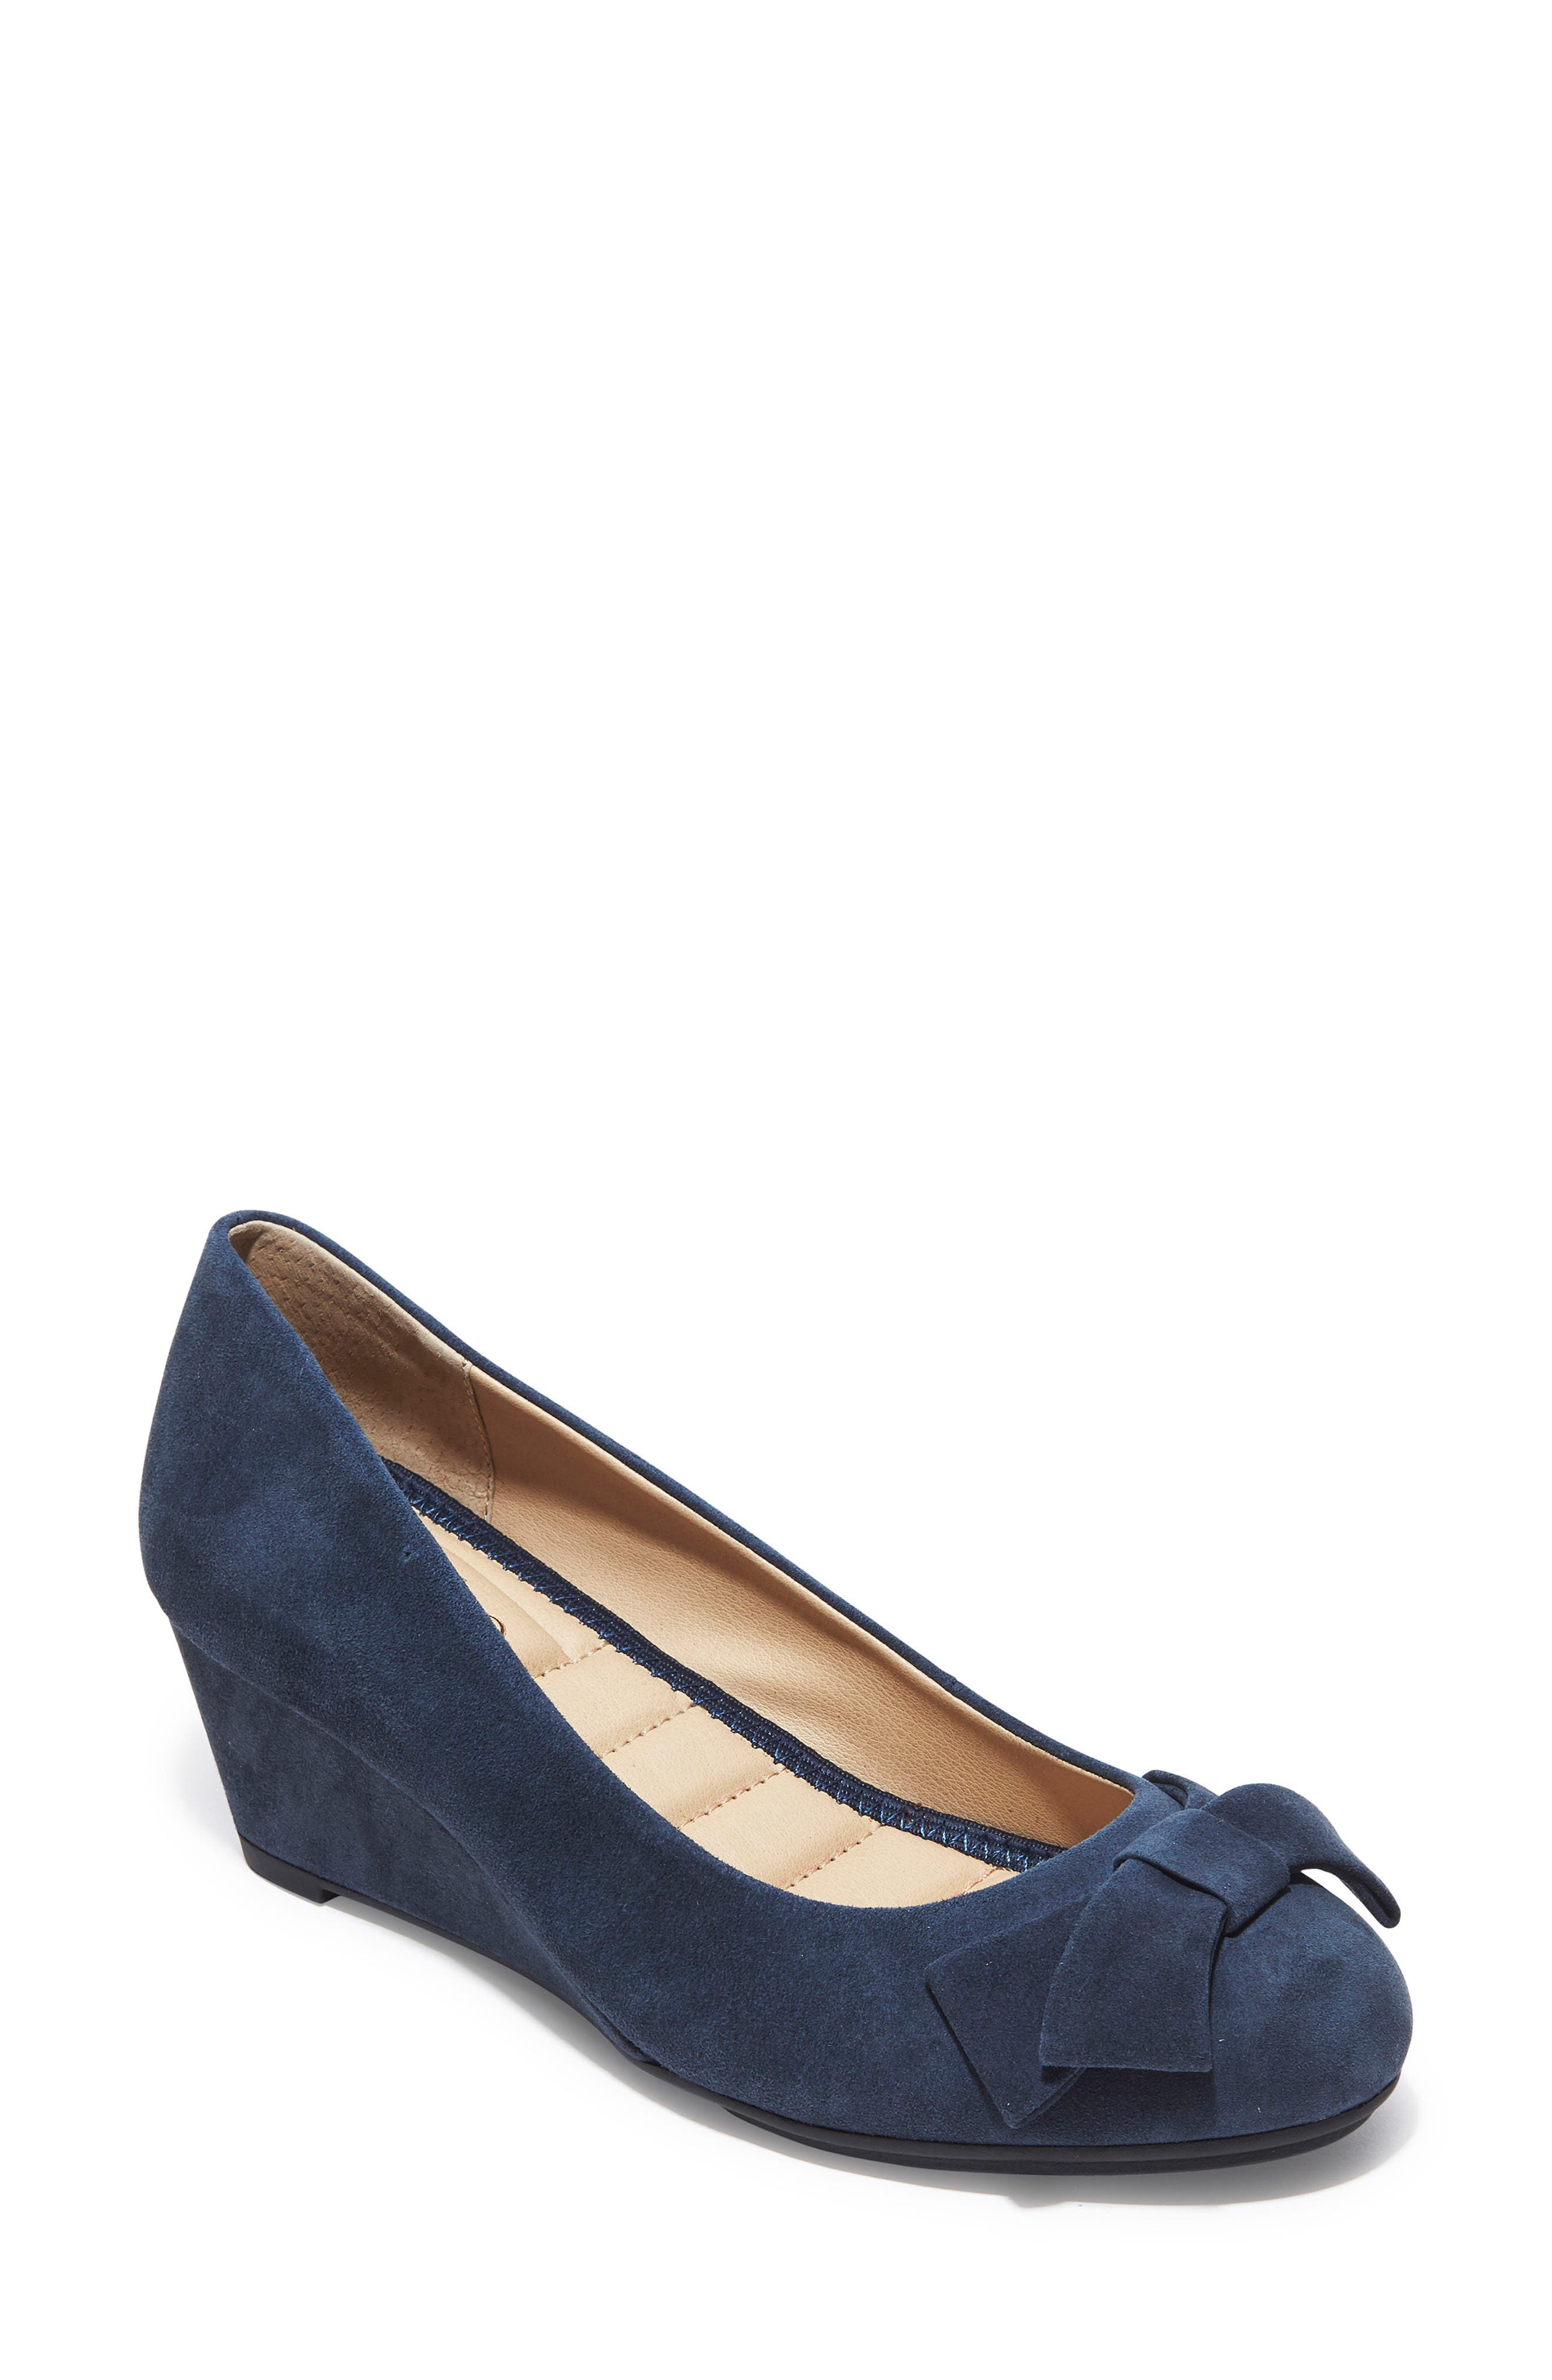 Alternate Image 1 Selected - Me Too Bow Embellished Wedge (Women)